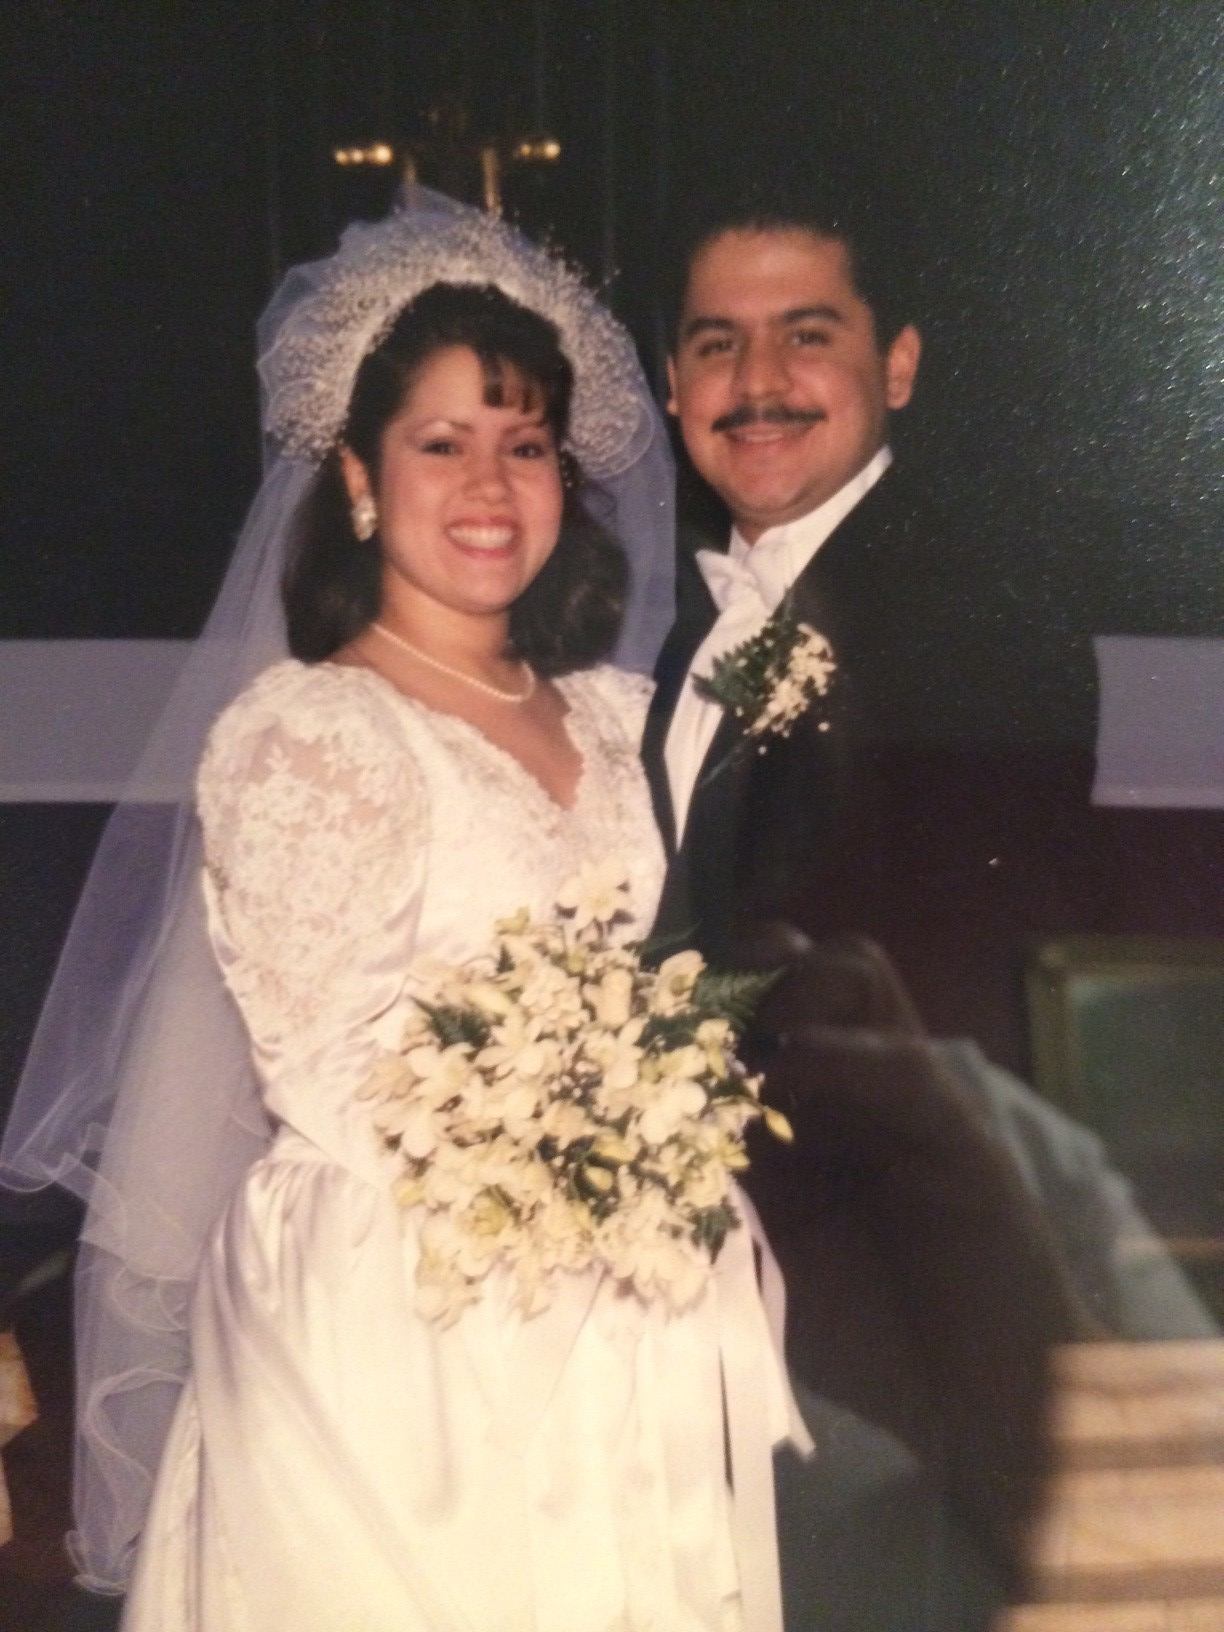 Our wedding photo circa March 18, 1989 !!